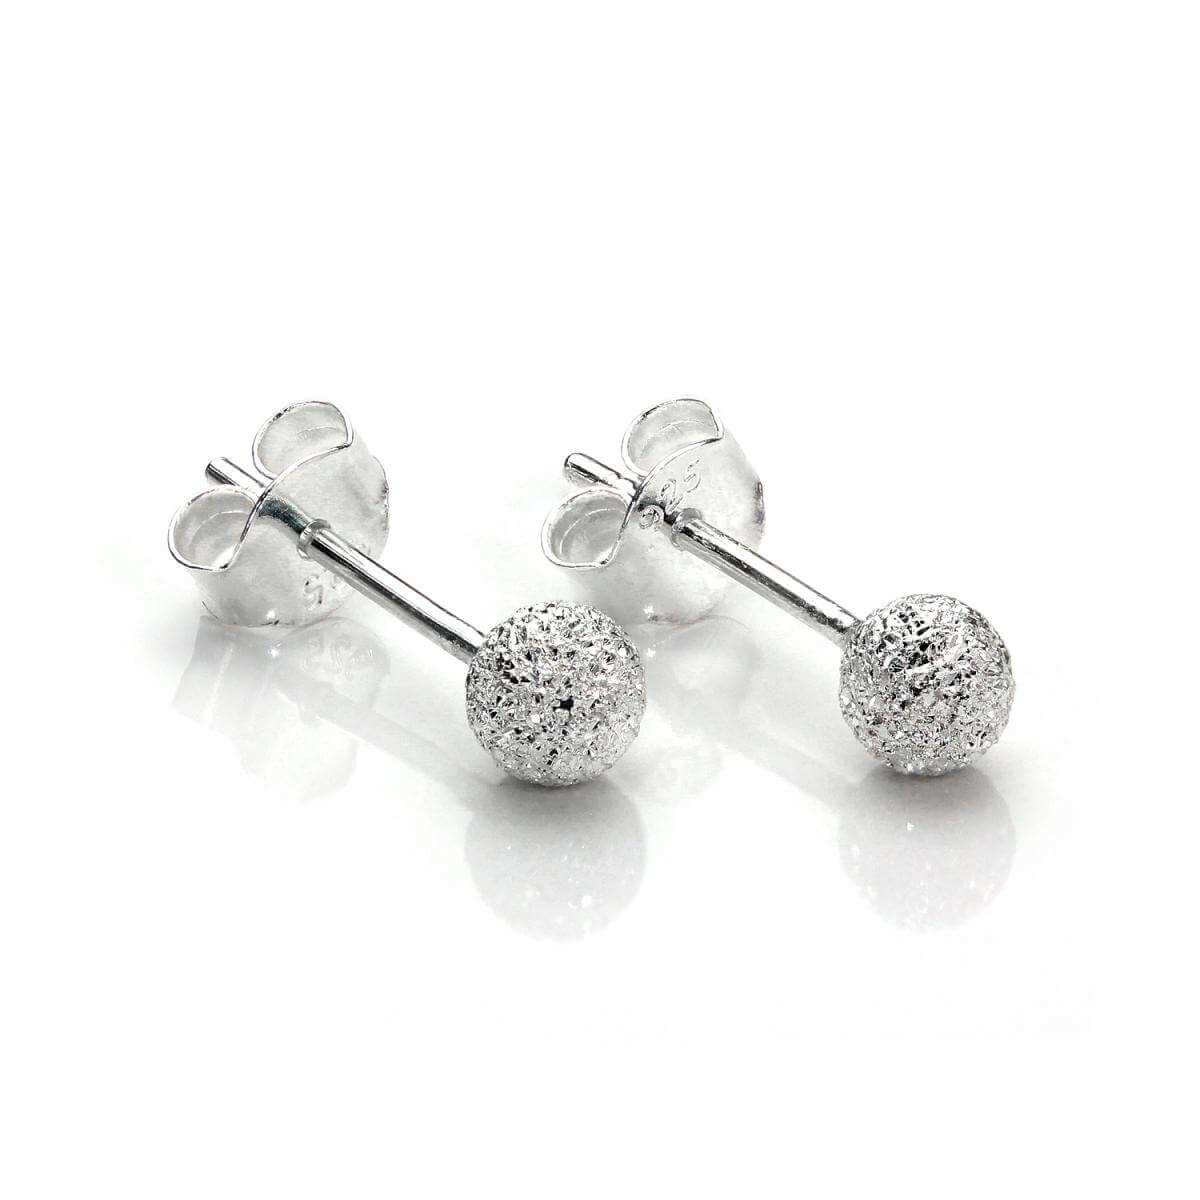 Sterling Silver 4mm Frosted Ball Stud Earrings